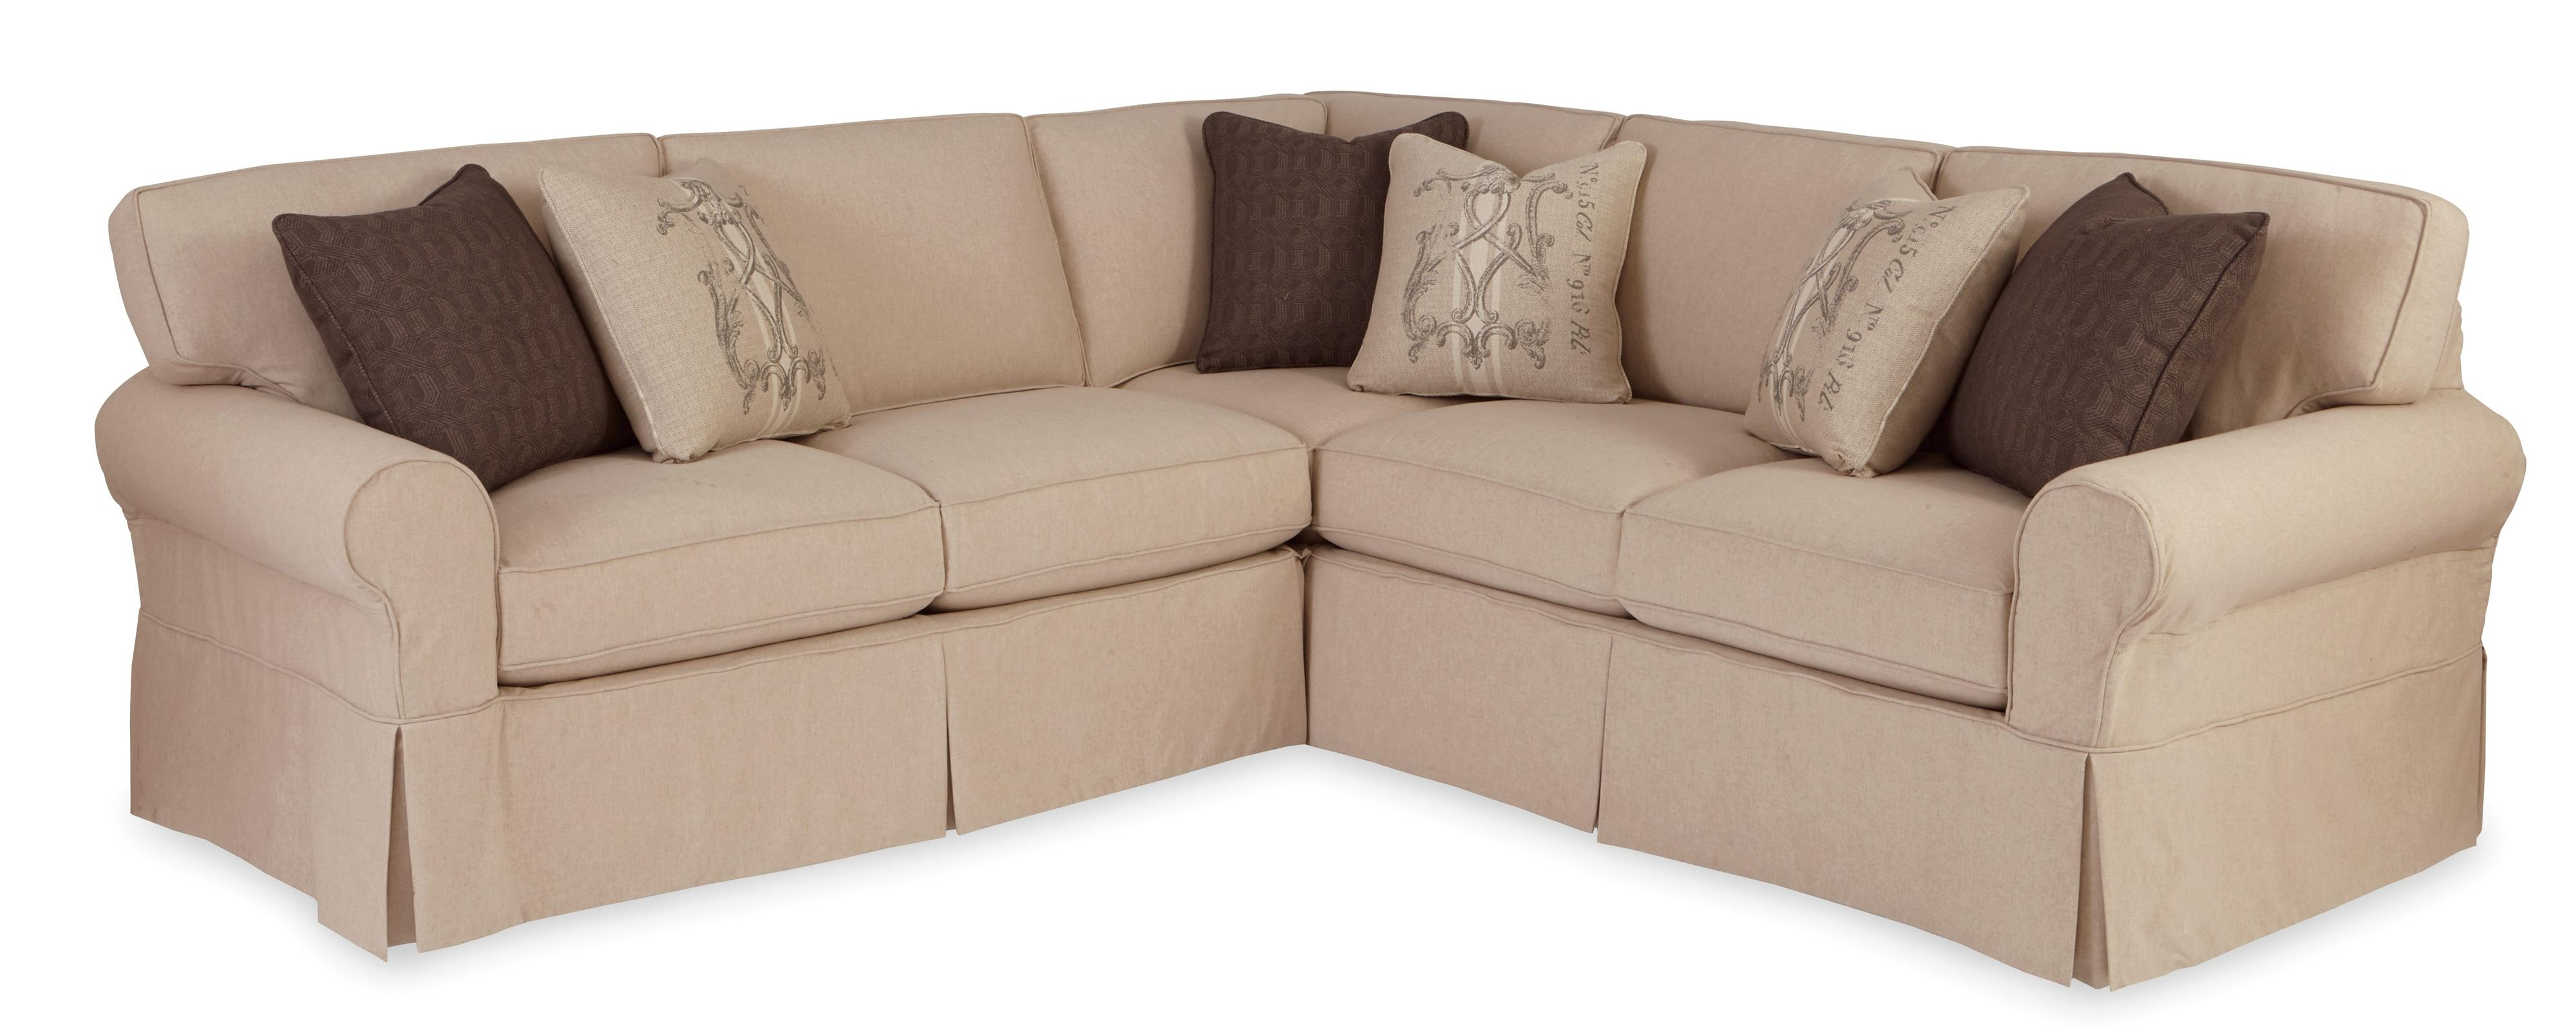 Sofas Center Sectional Diy Slipcover For Sofa With Chaisedys With Regard To Craftsman Sectional Sofa (  sc 1 st  Home Design Projects : craftsman sectional sofa - Sectionals, Sofas & Couches